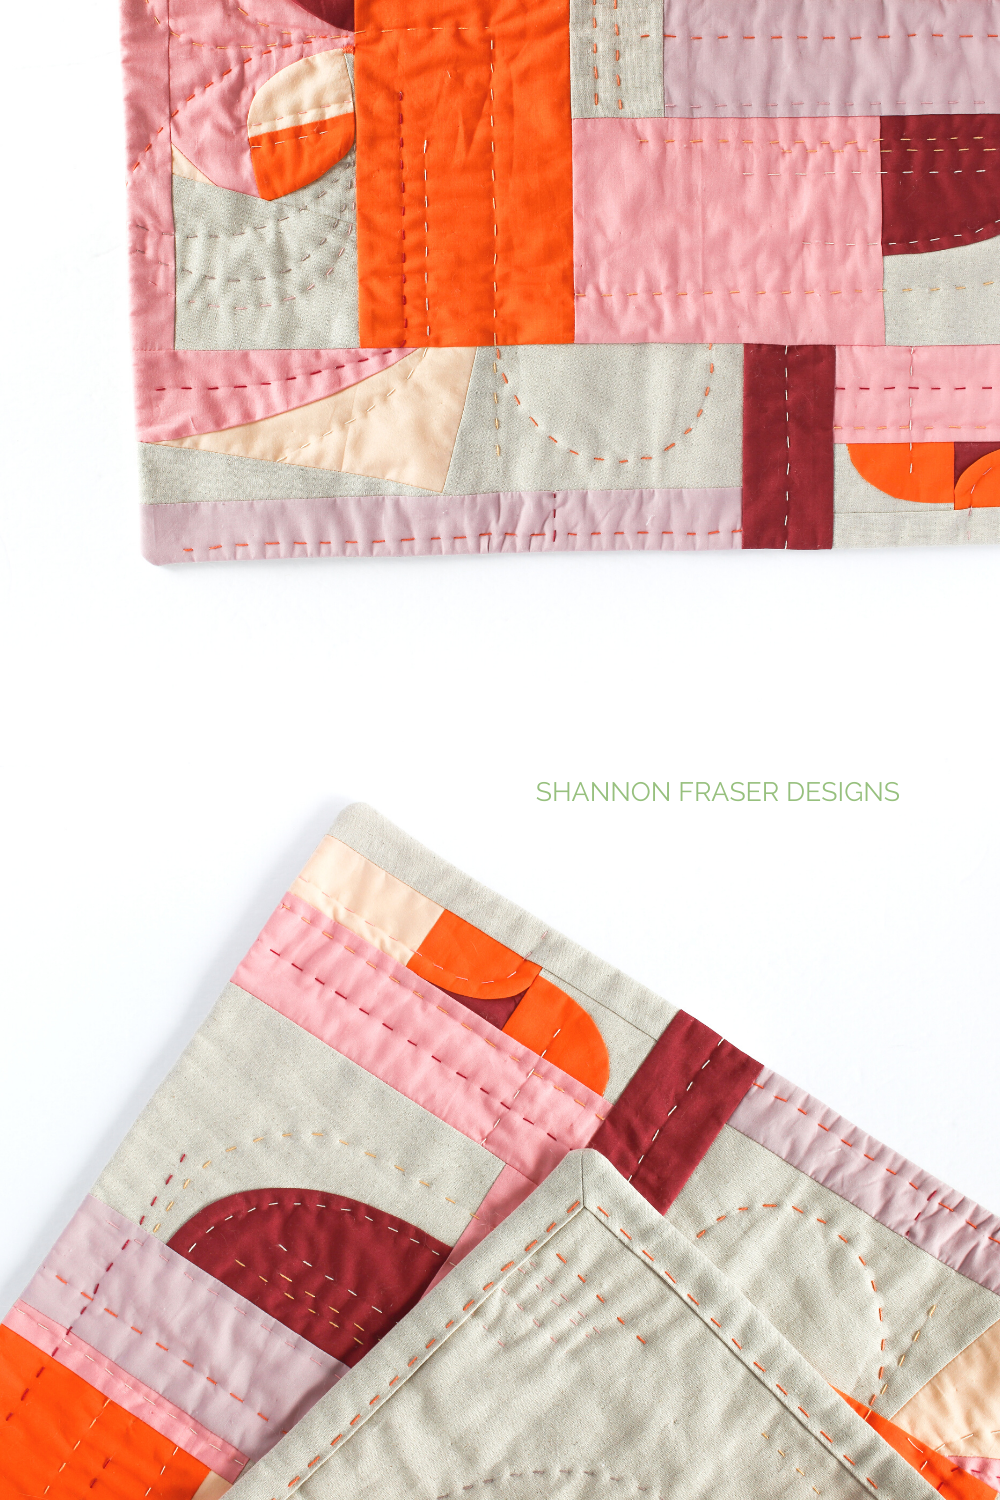 Hand quilting details on the Cloud Surfing improv wall hanging featuring faced binding | Shannon Fraser Designs #quilt